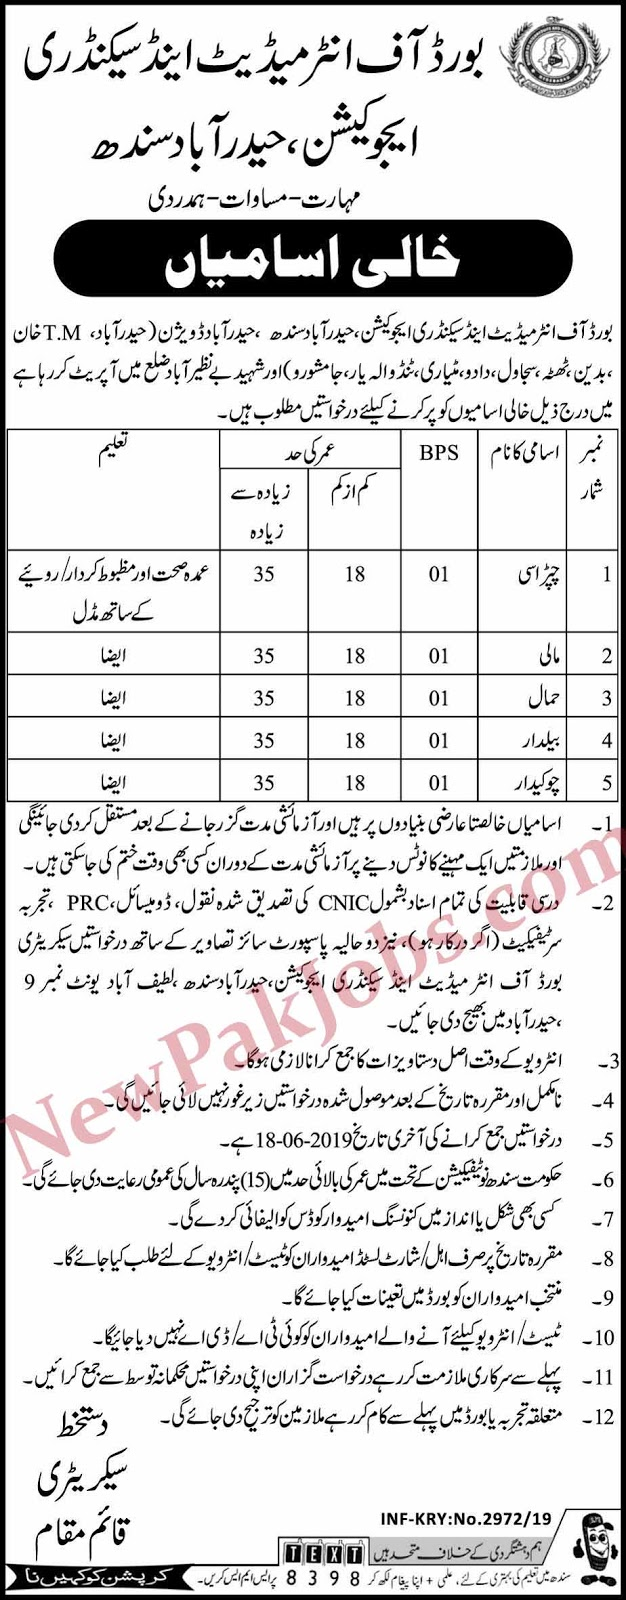 Govt Vacancies in Board of Intermediate and Secondary Education Hyderabad